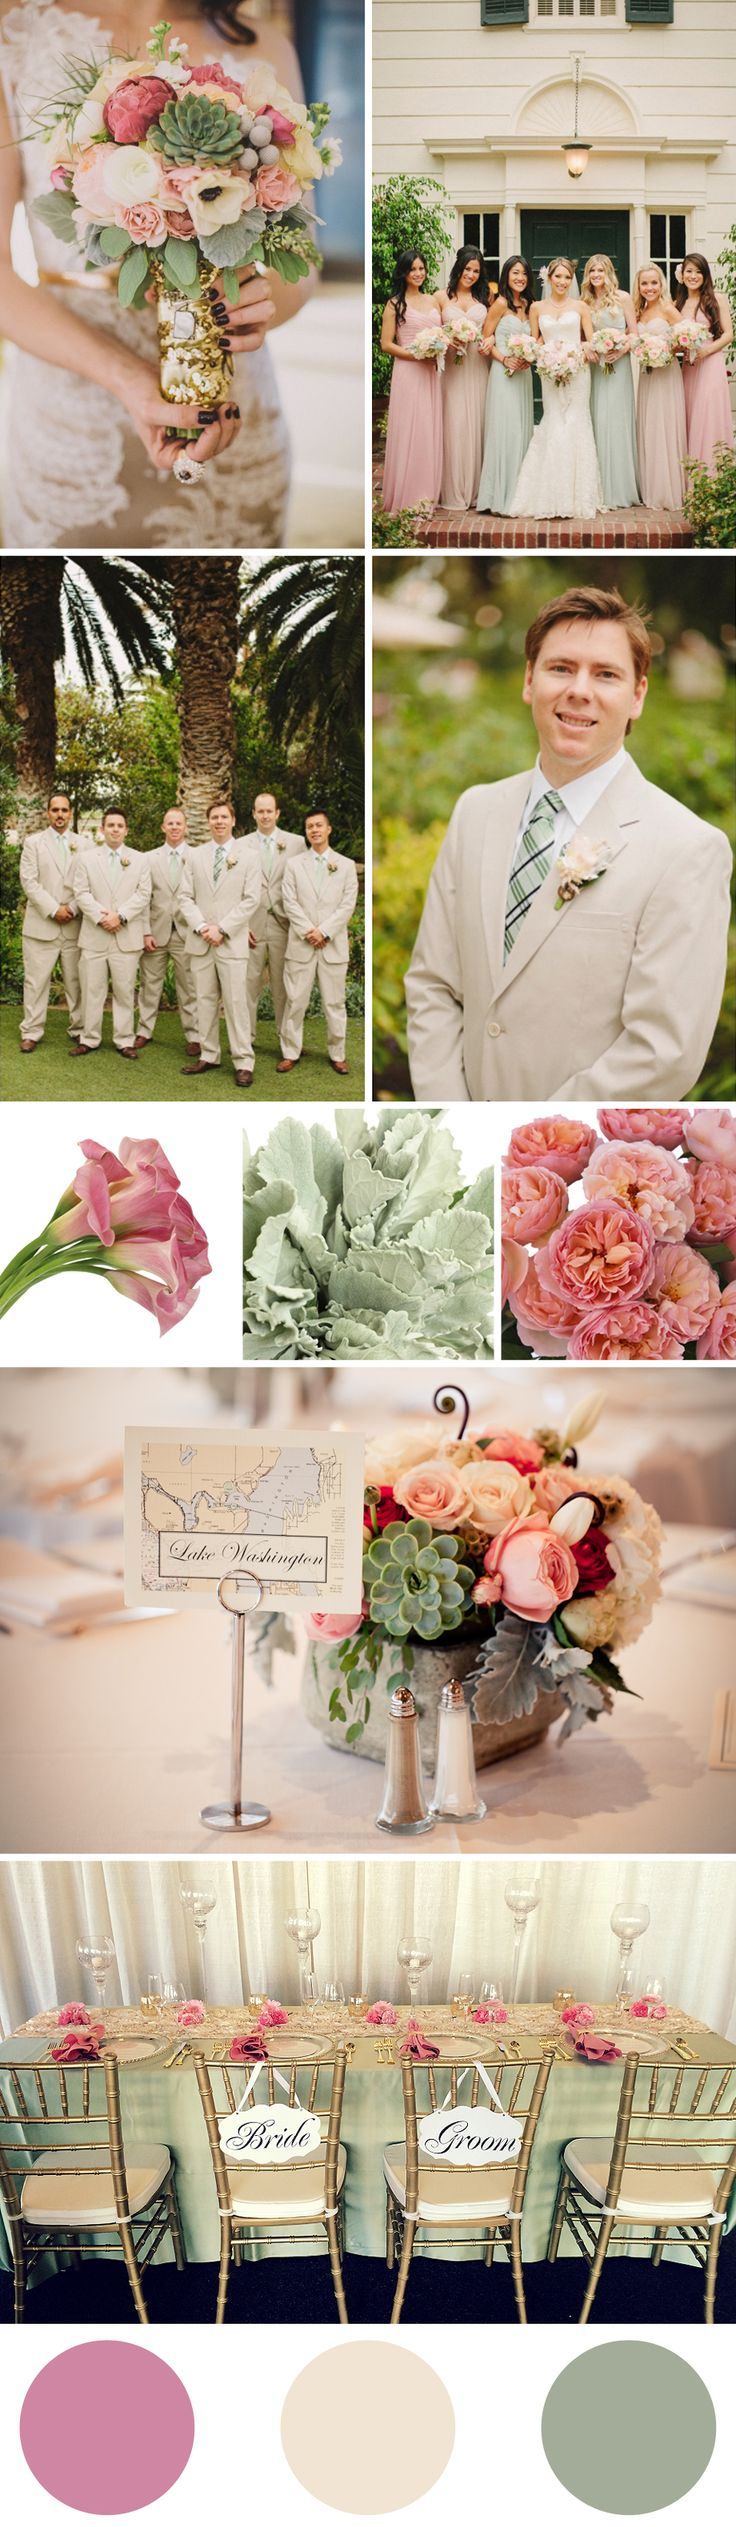 Wedding Color Palette - Cashmere Rose, Pearled Ivory and Desert Sage